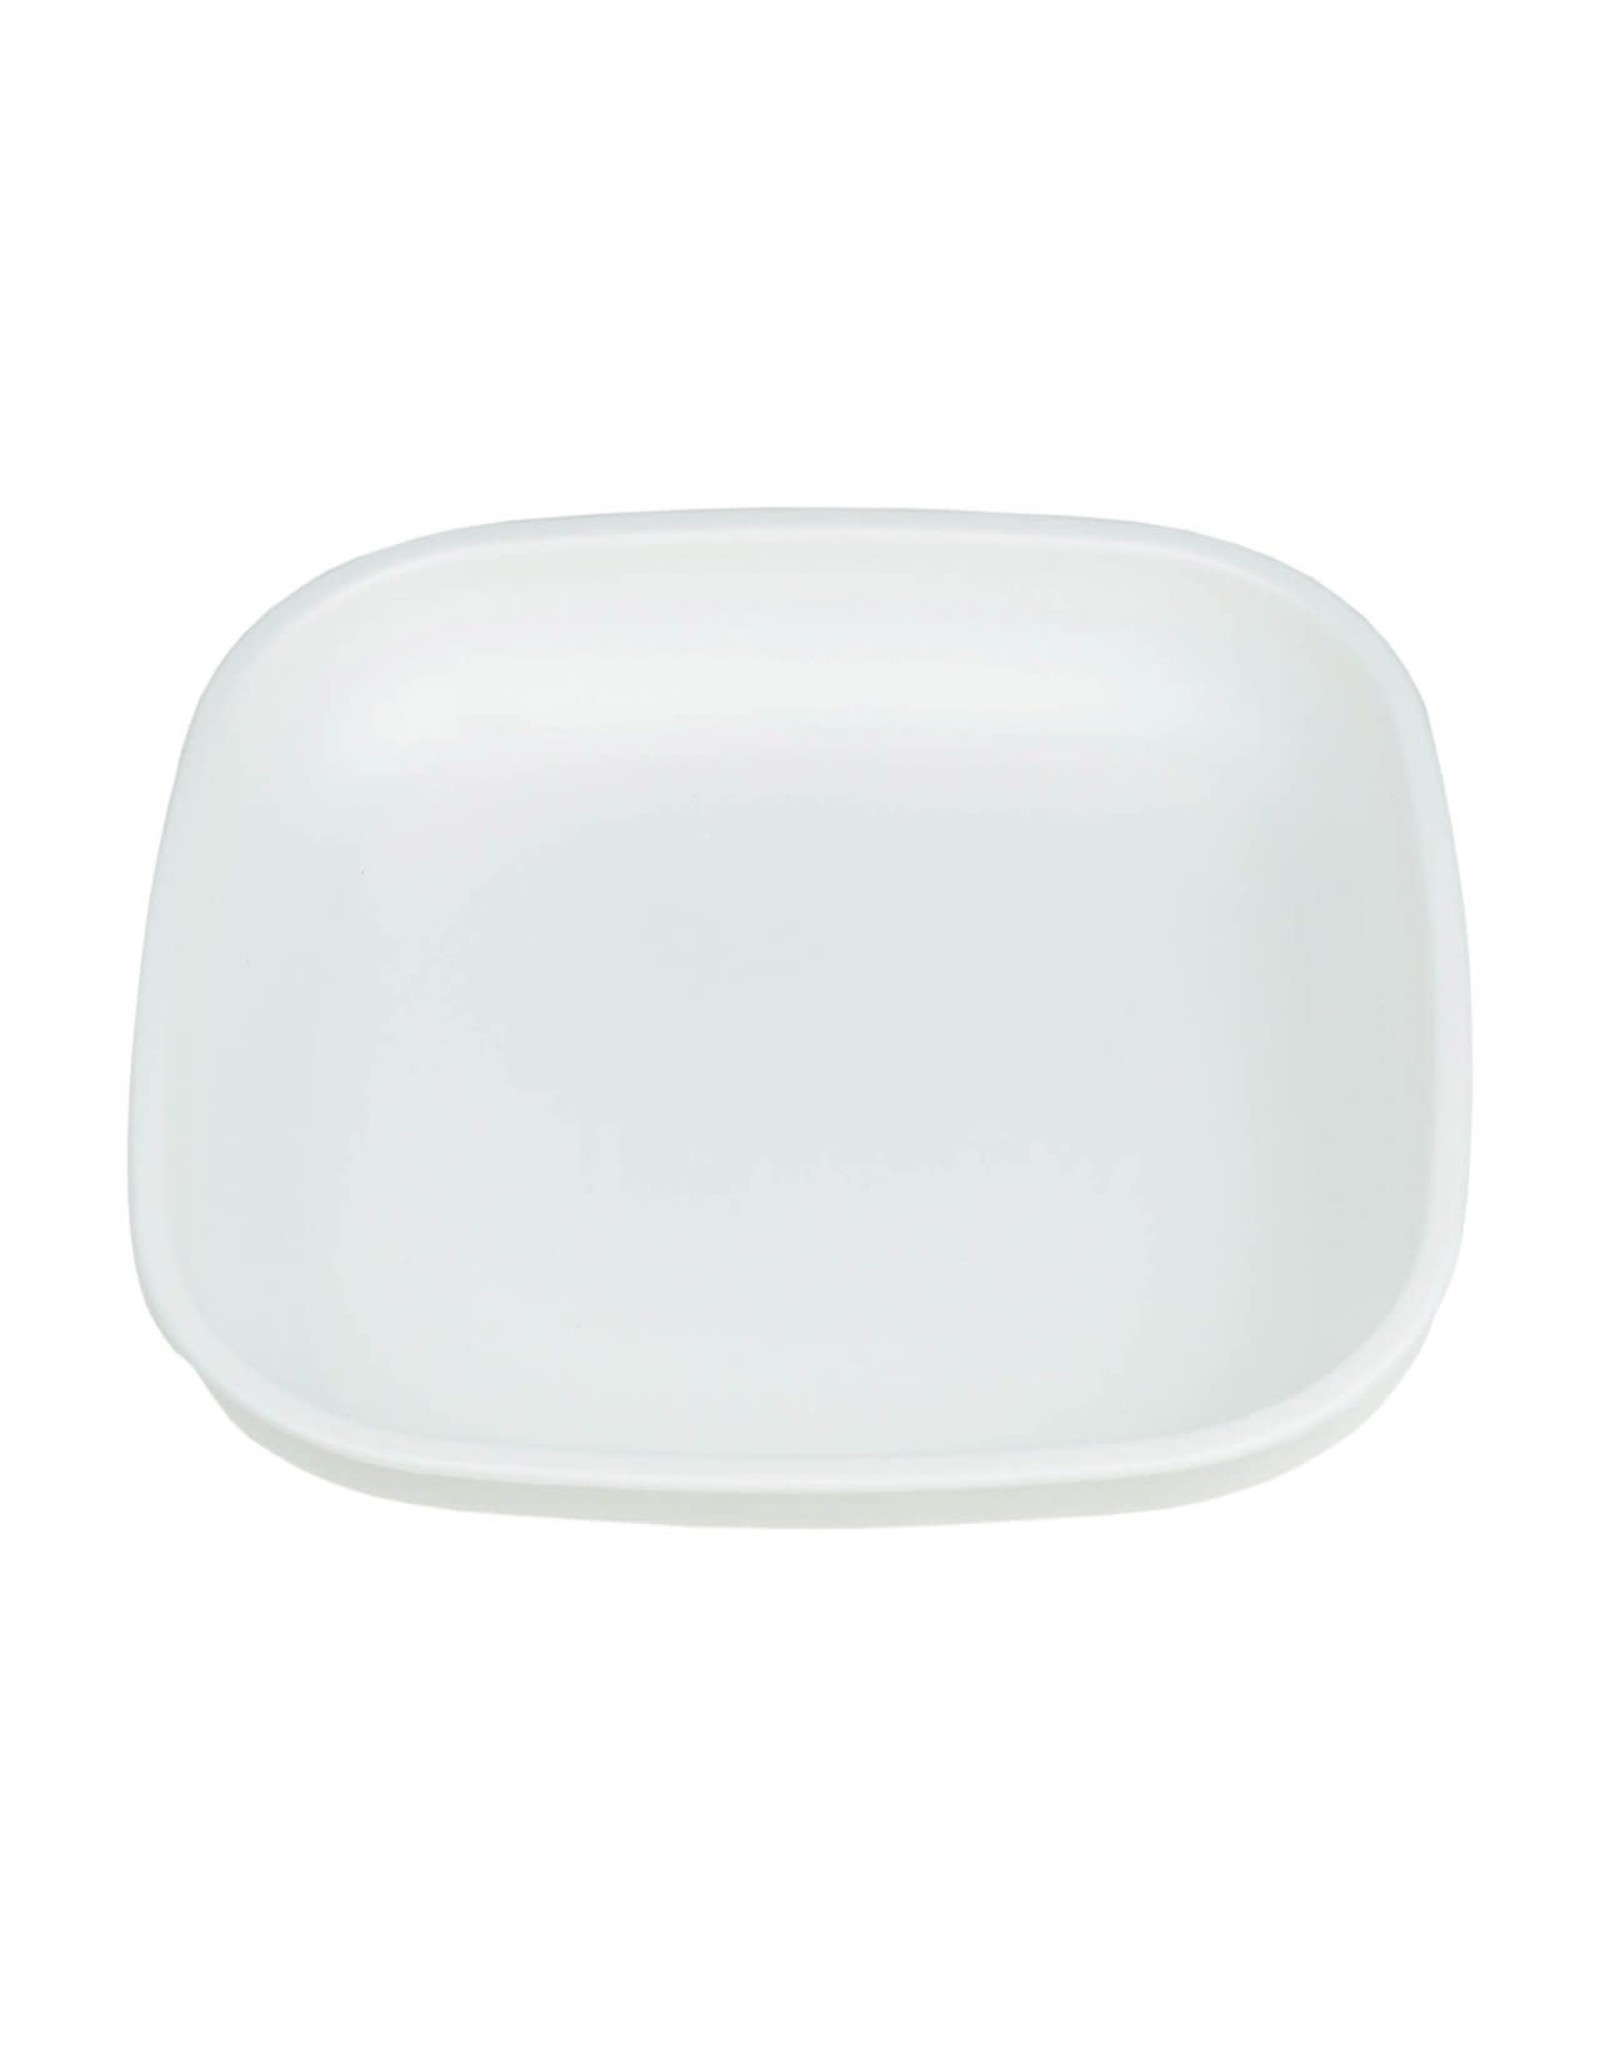 Re-Play Re-Play Undivided Plate, White, One Size